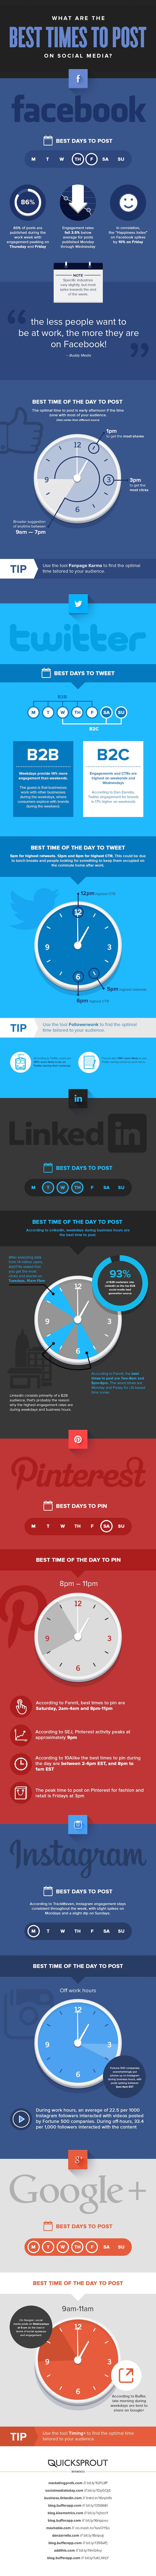 What Are the Best Times to Post on Social Media? [Infographic], via @HubSpot